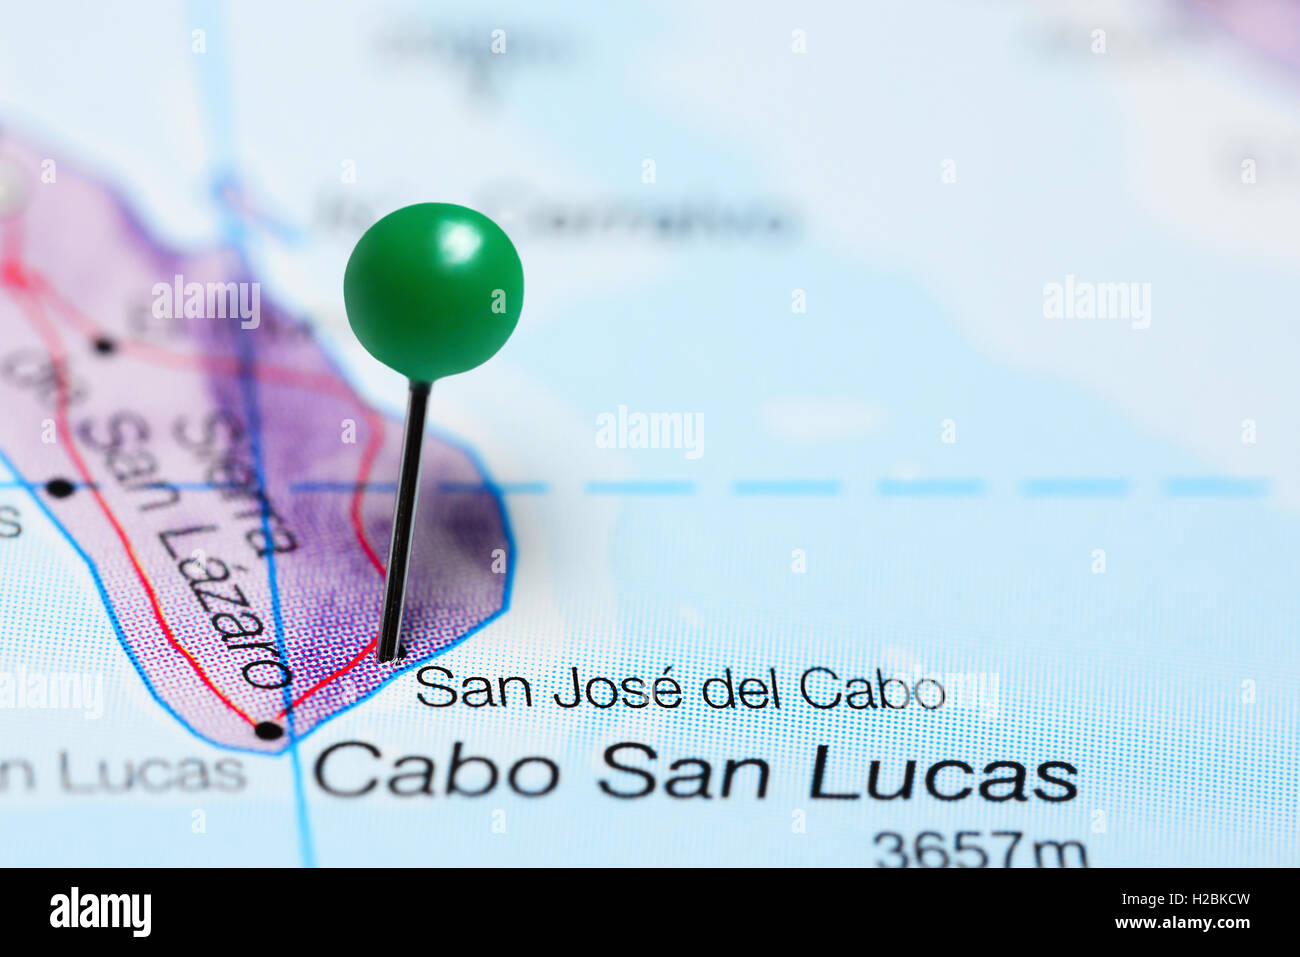 San Jose Del Cabo Mexico Map.San Jose Del Cabo Pinned On A Map Of Mexico Stock Photo 121958617